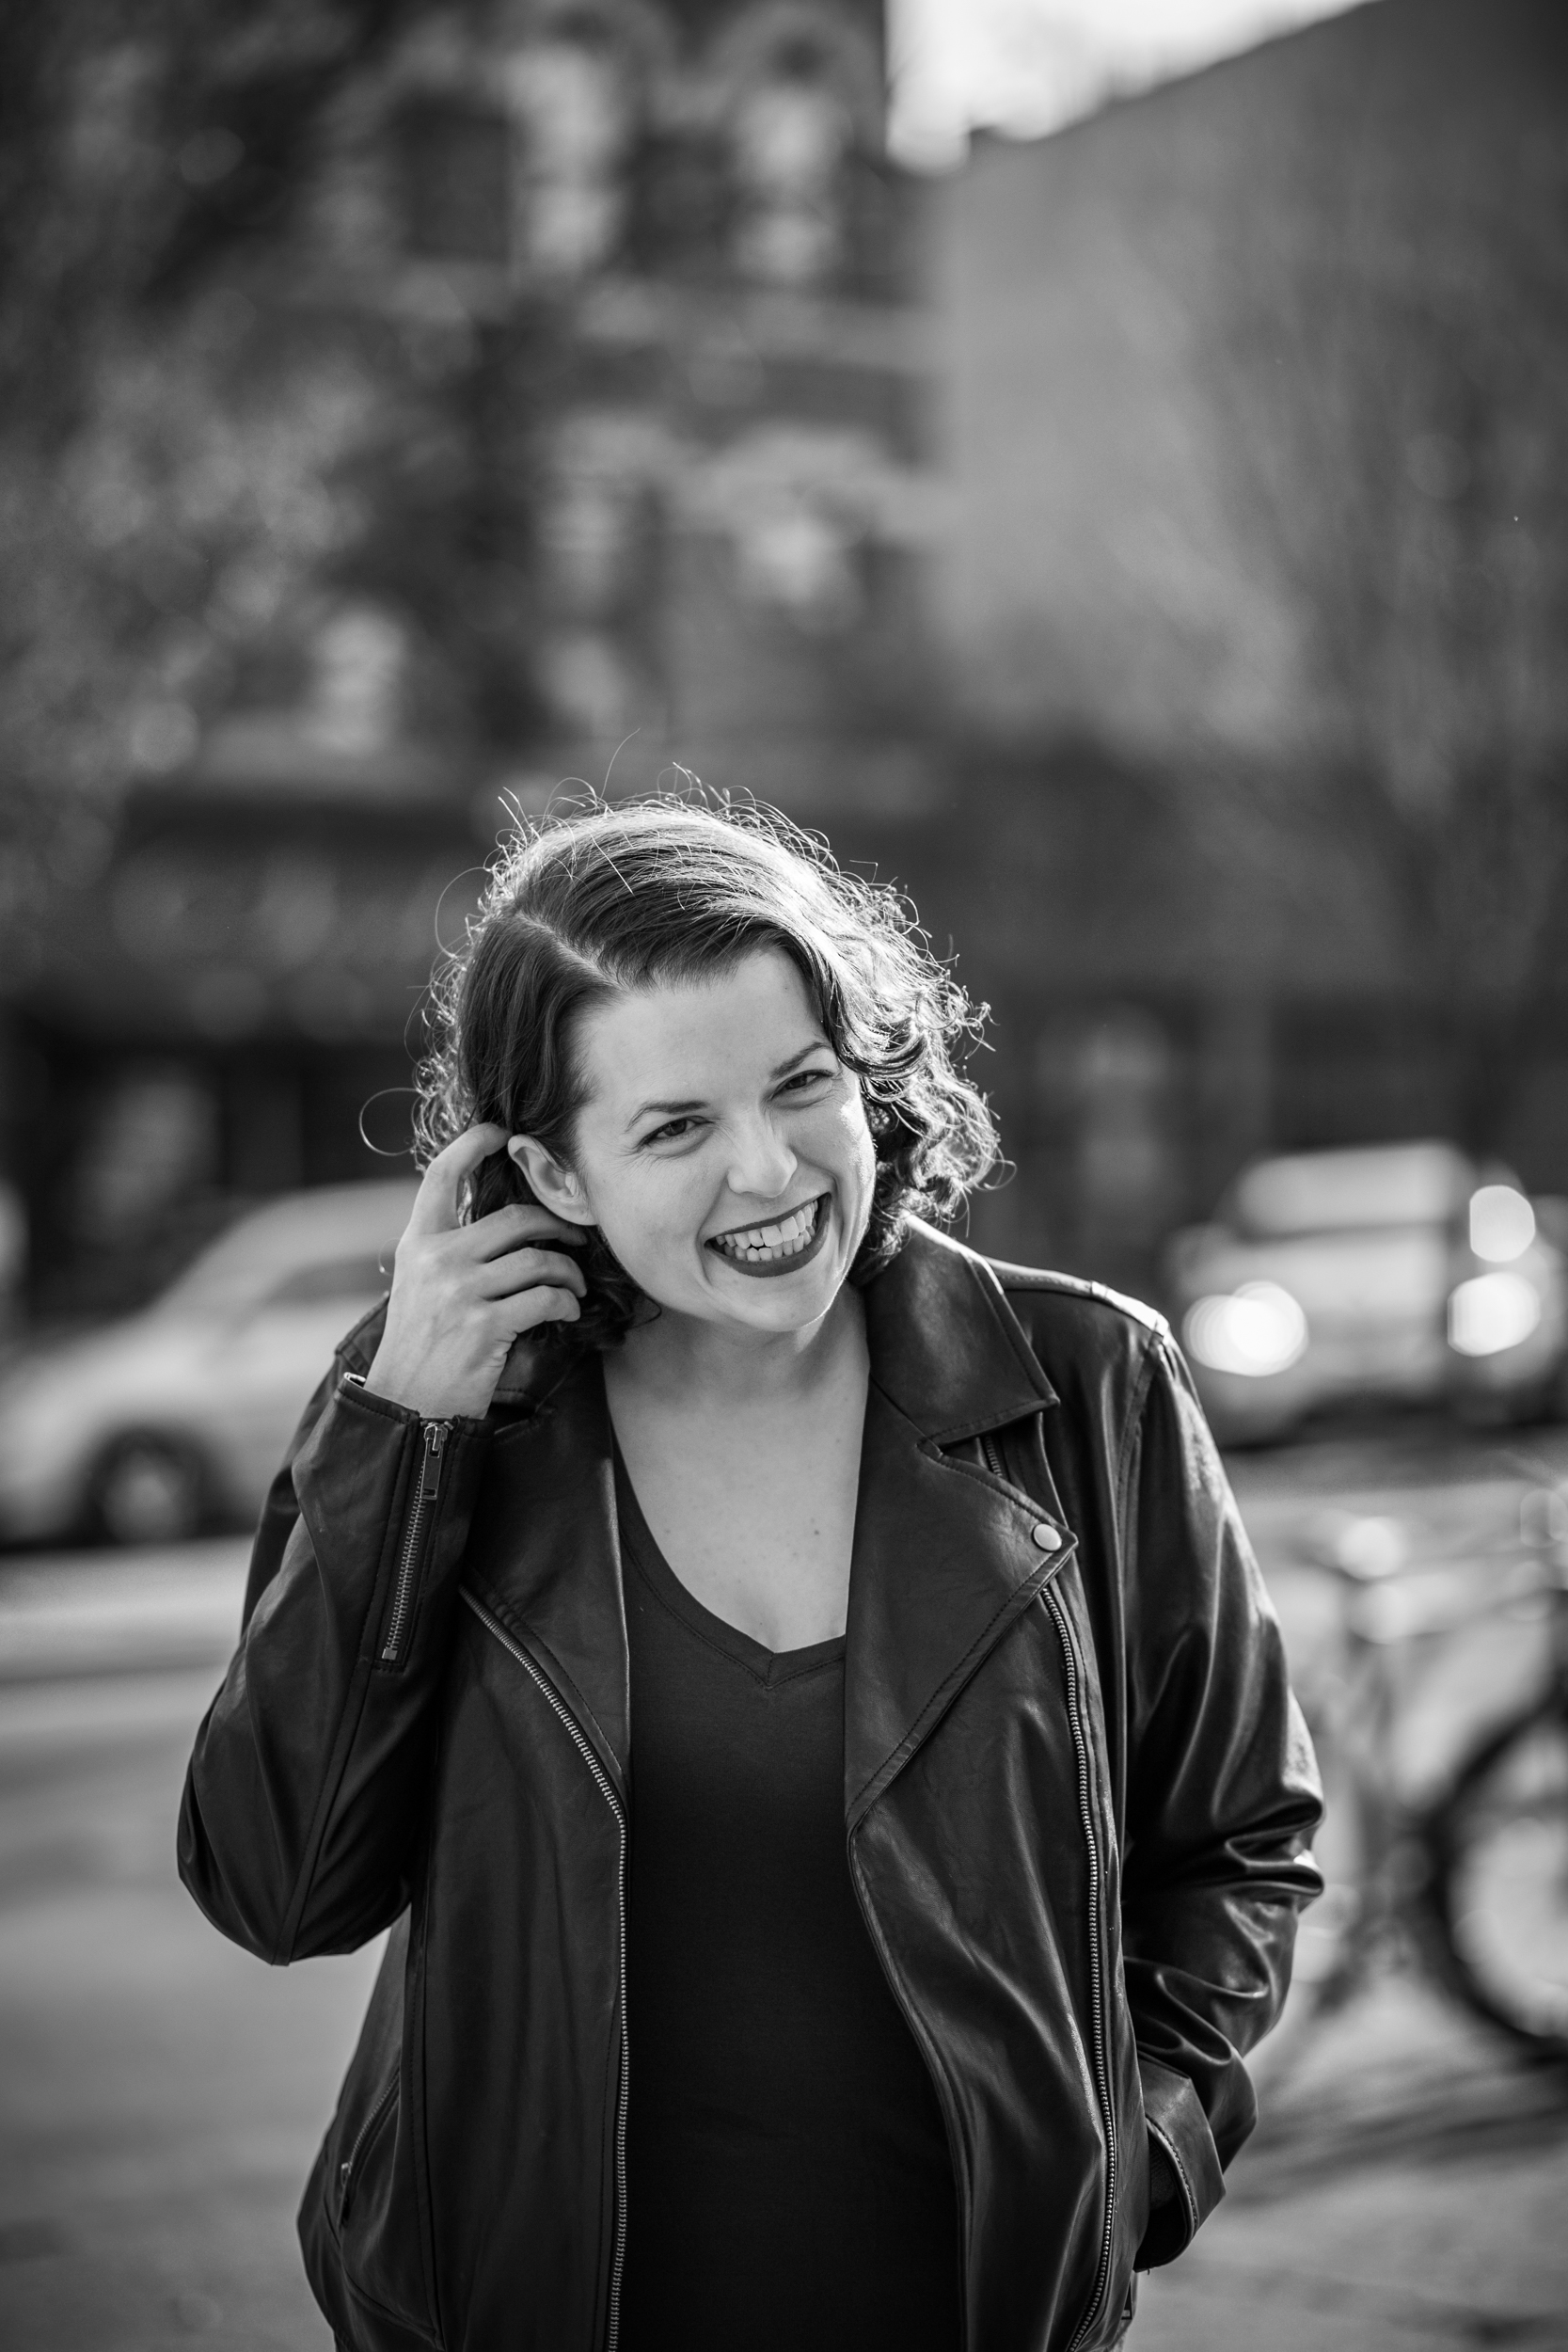 portrait-photography-brooklyn-photographer-18.jpg